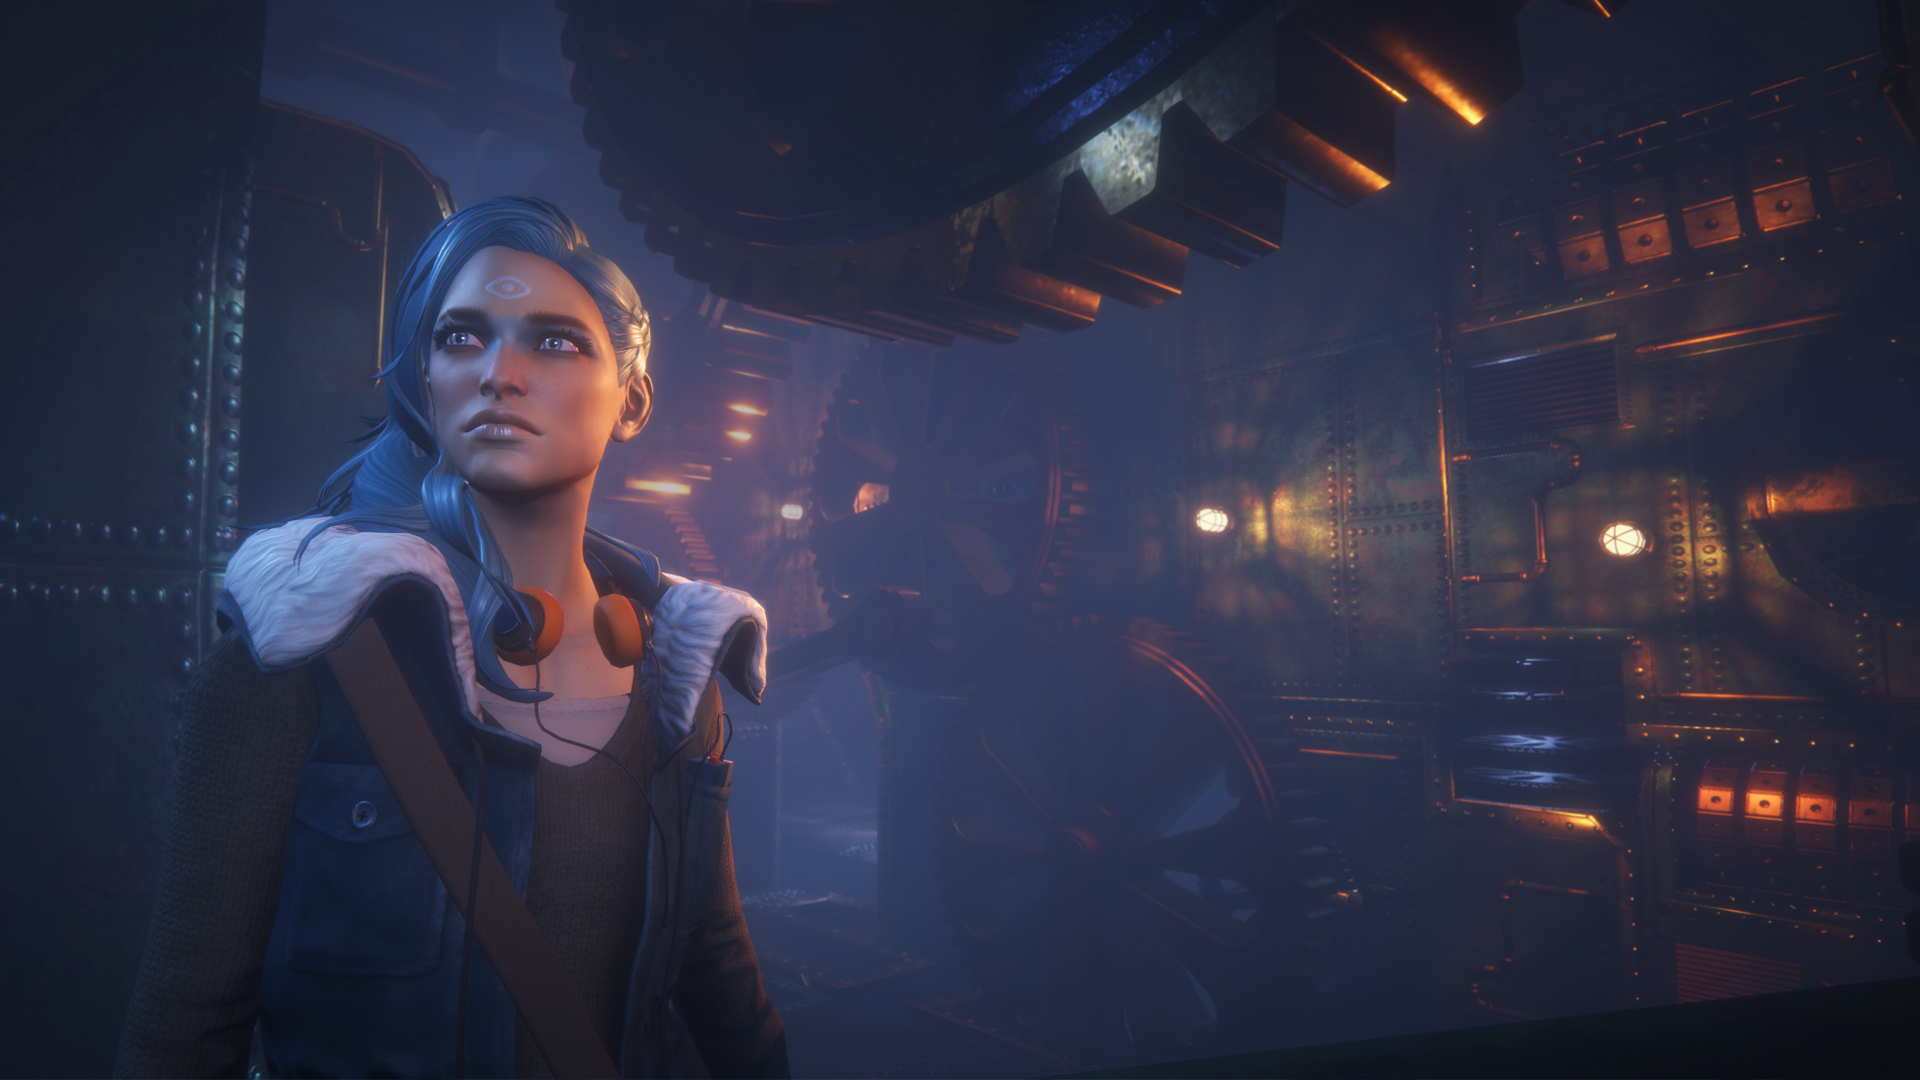 3d Wallpaper Ios 6 Dreamfall Chapters Gets New Video That Introduces